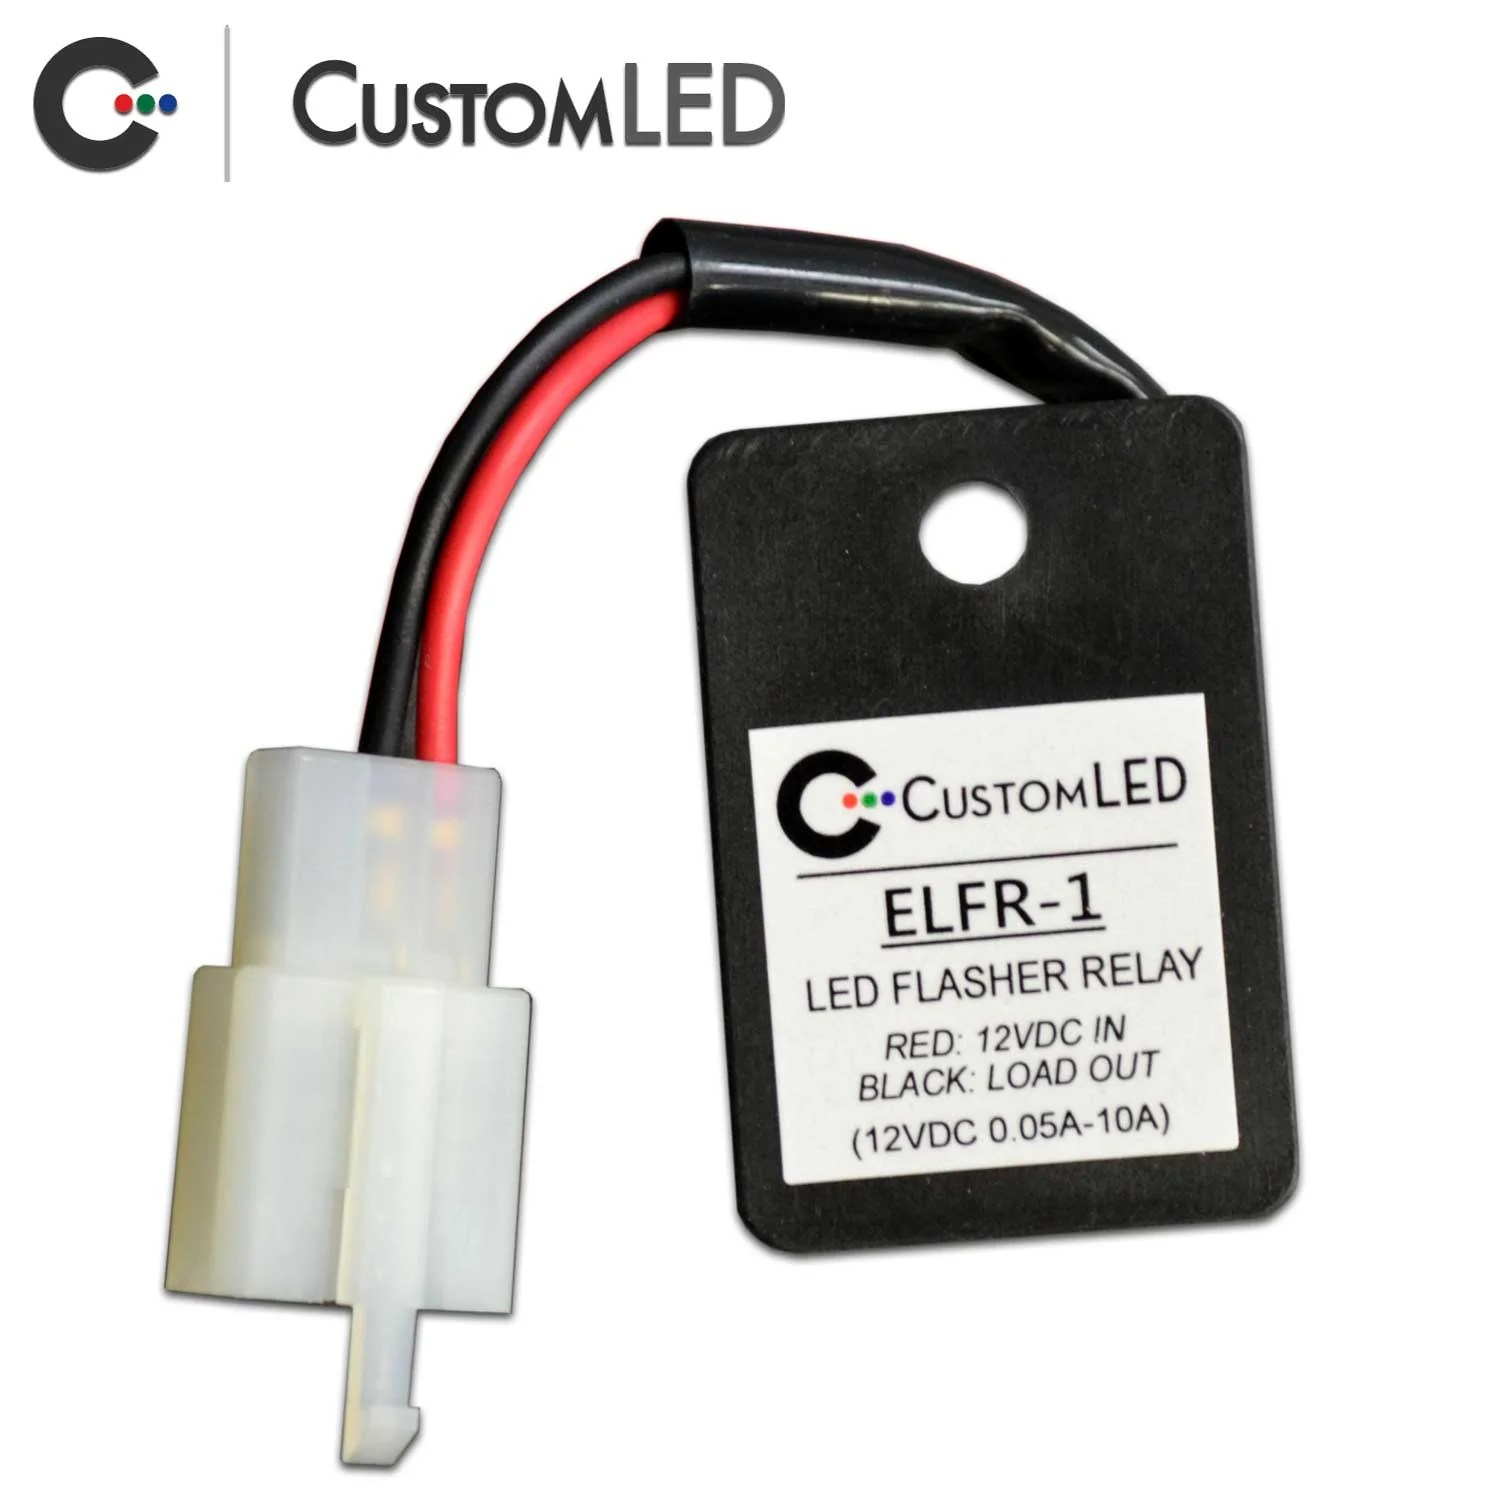 hight resolution of elfr 1 electronic led flasher relay with oem connector